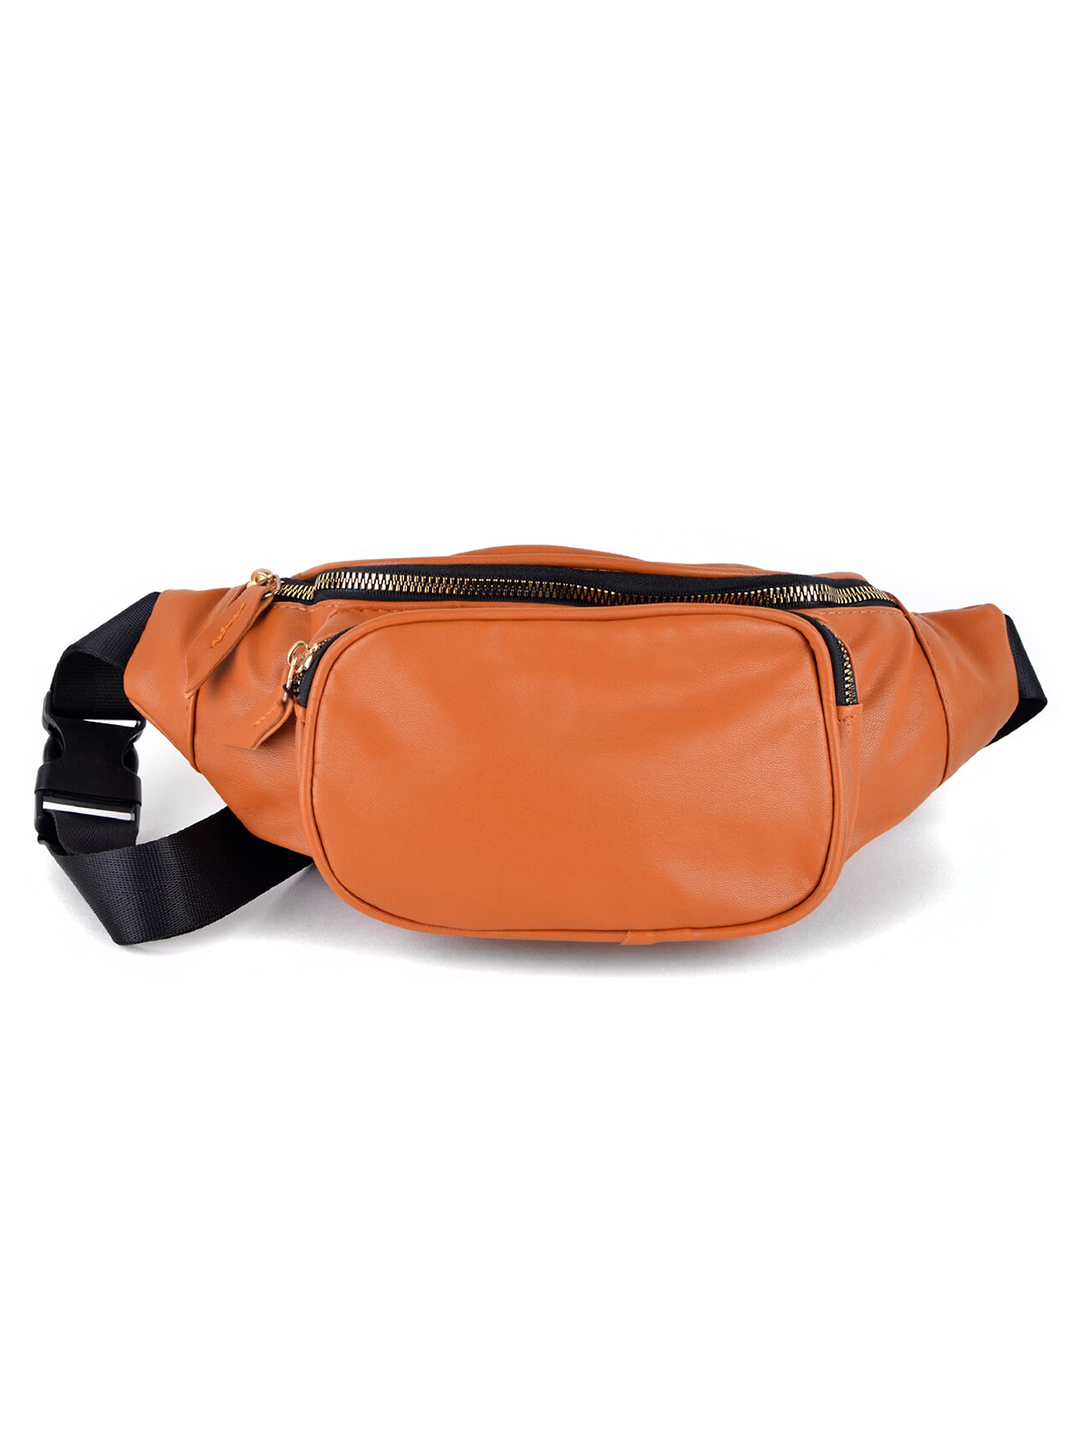 PU Leather Fanny Pack -Cognac - Front